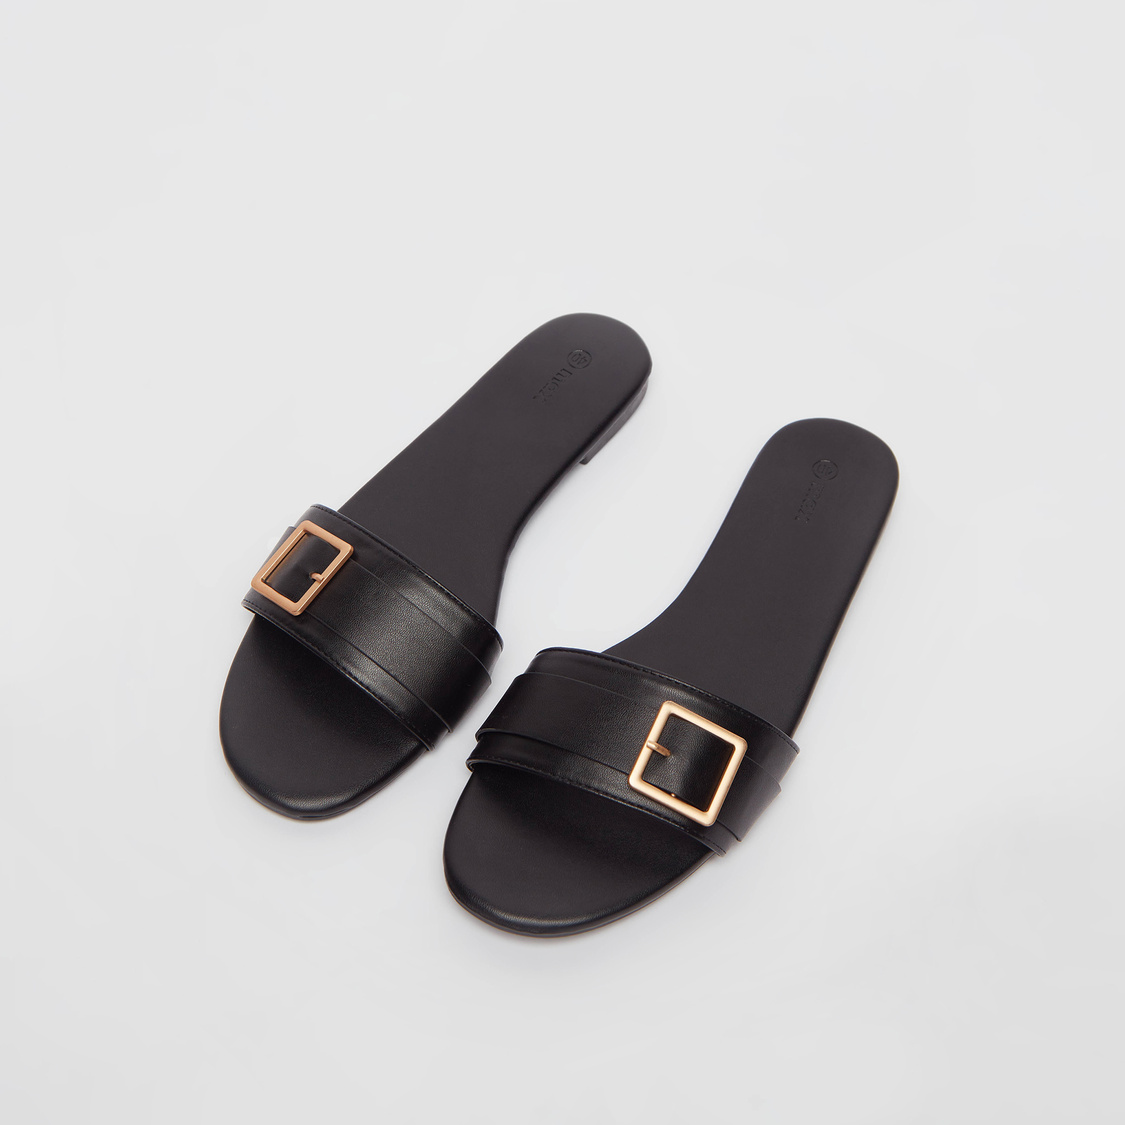 Pin Buckle Detail Sandals with Stacked Heels